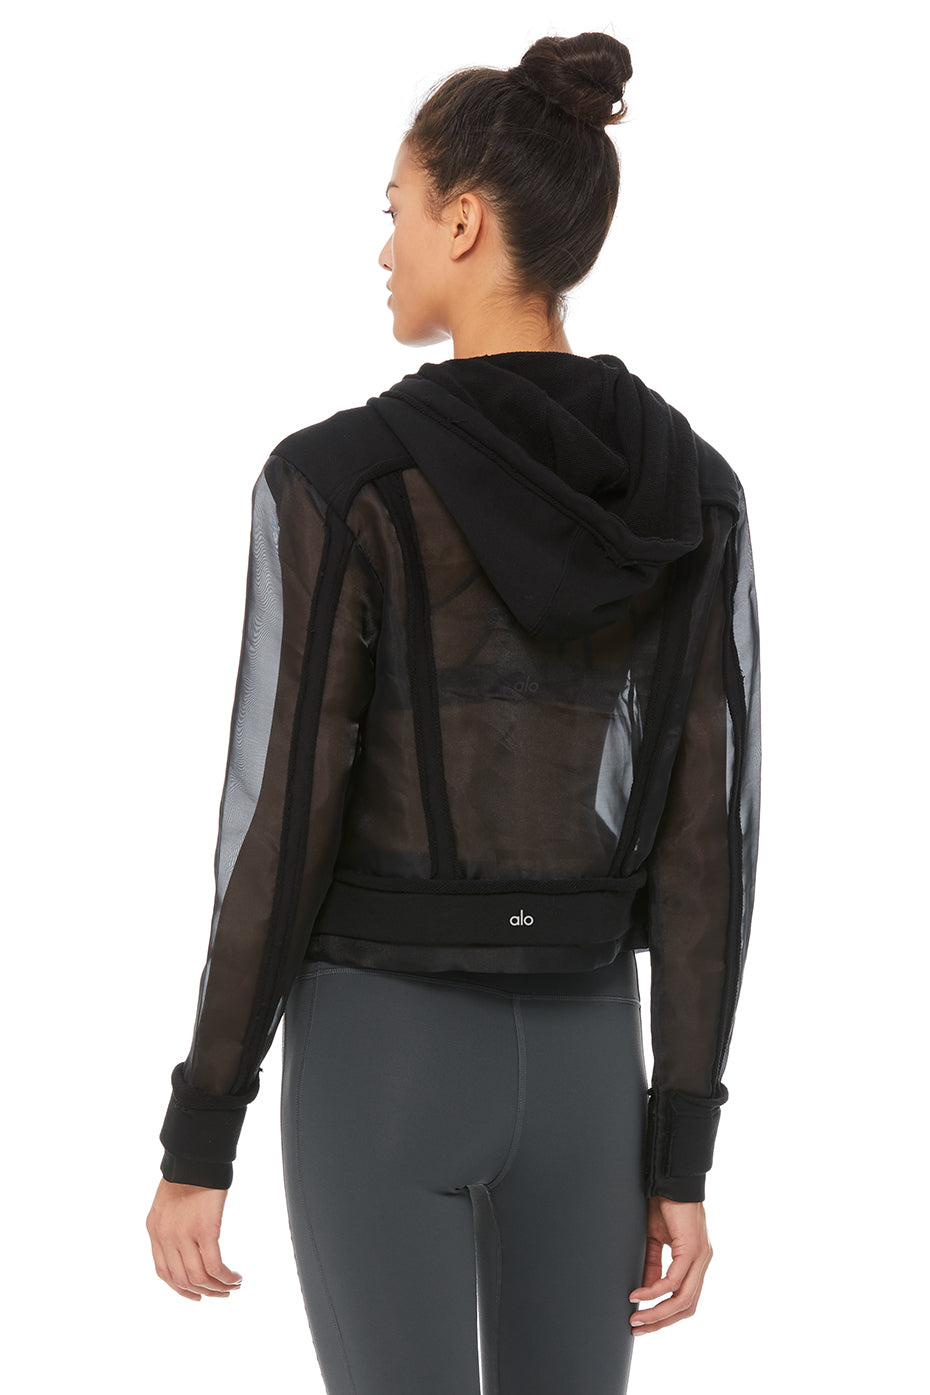 Limited-Edition Exclusive Zephyr Jacket